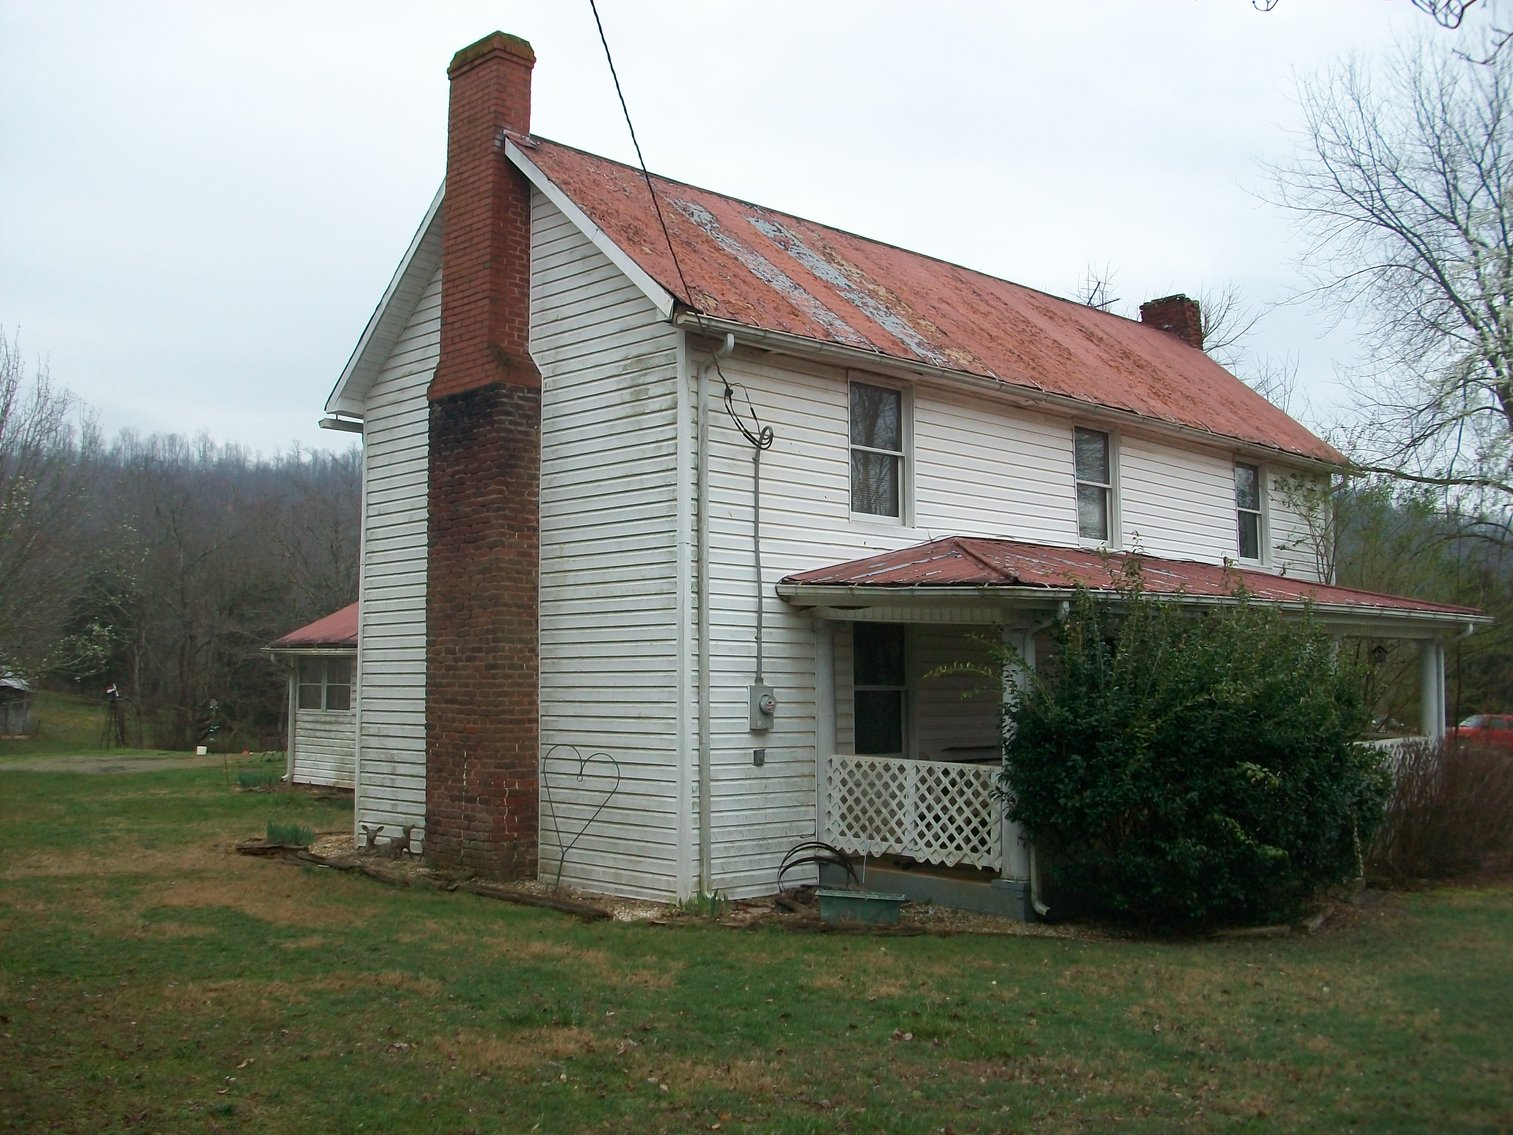 Image for ABSOLUTE TRUSTEE AUCTION: 21± Acres, Outbuildings, House (Franklin County, VA)